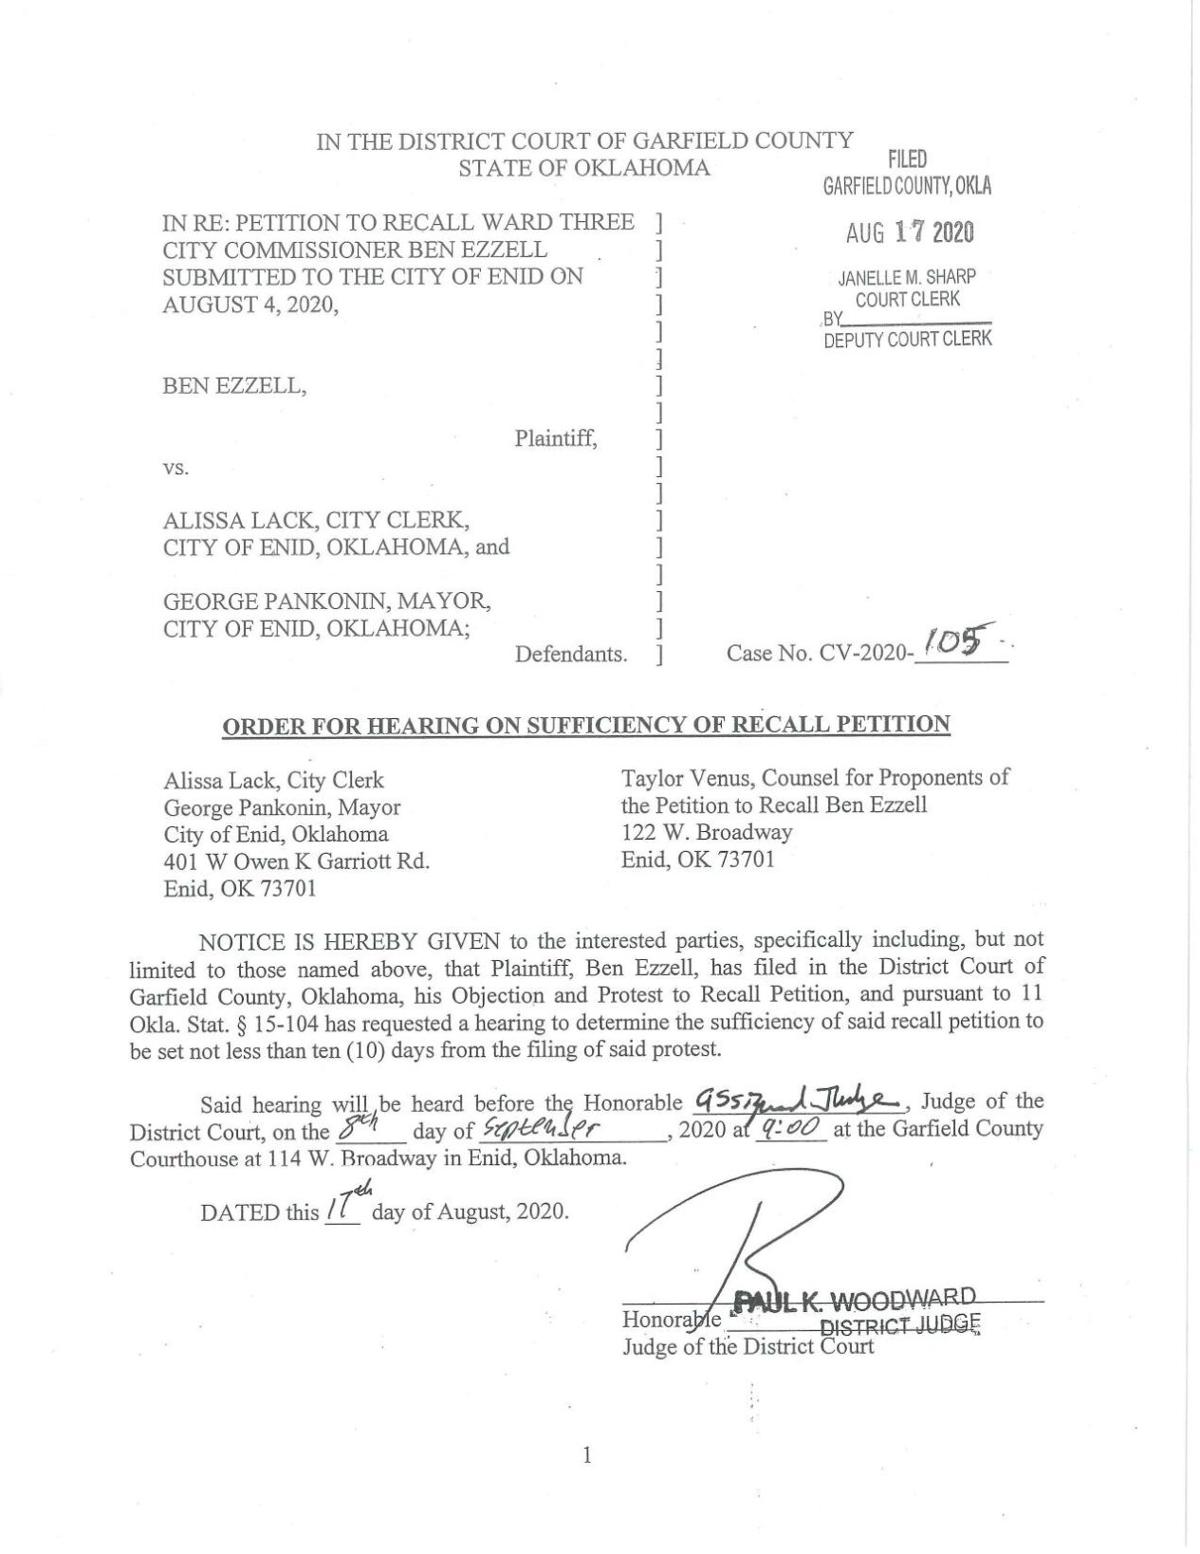 PDF of Ben Ezzell's filed protest, with order and exhibits